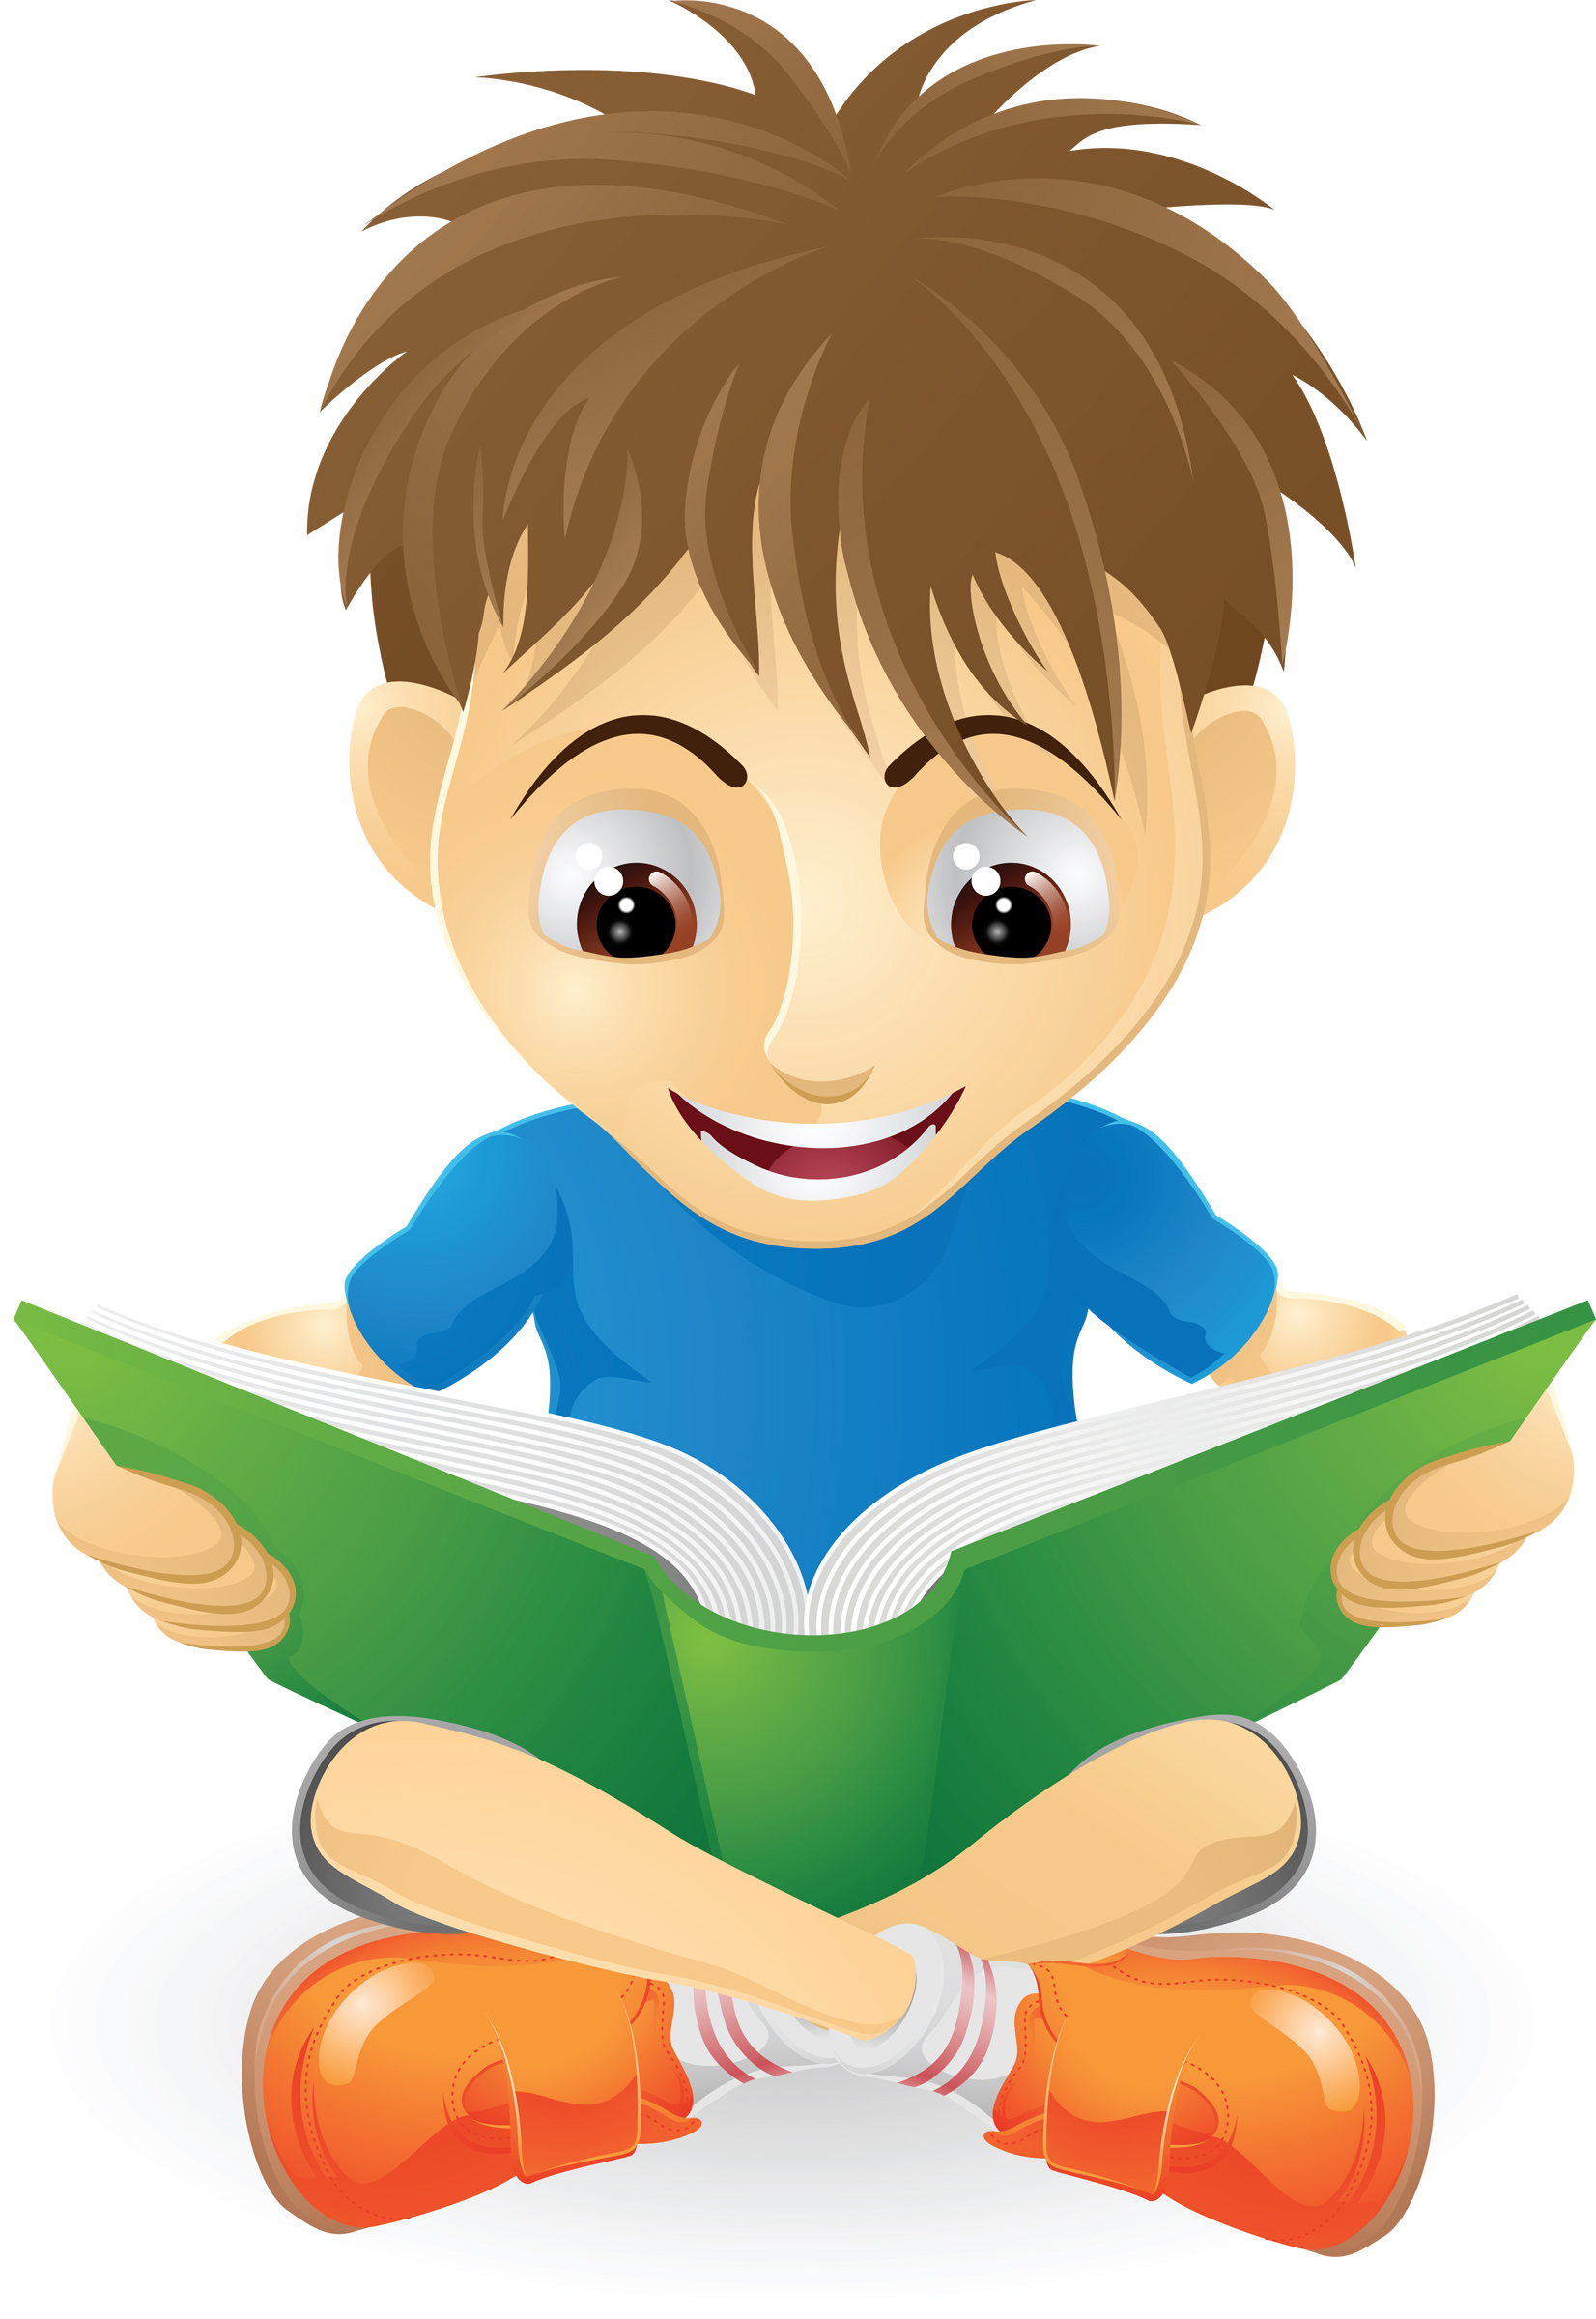 Choice clipart kid Studying kids Art collection Reading